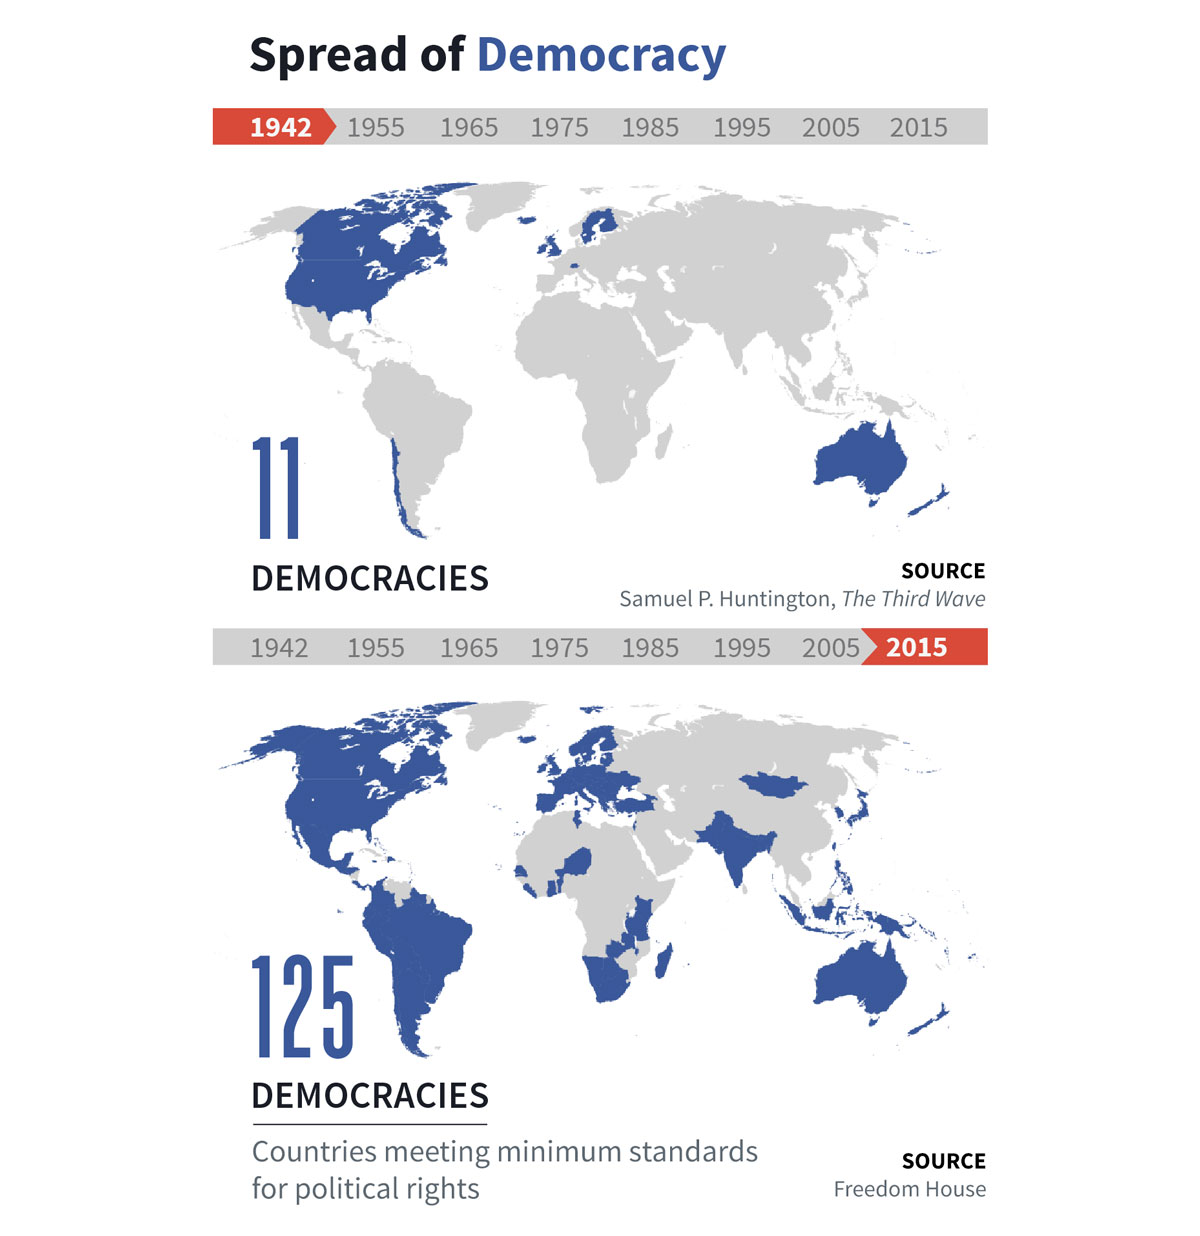 Spread of Democracy from 1942 to 2015